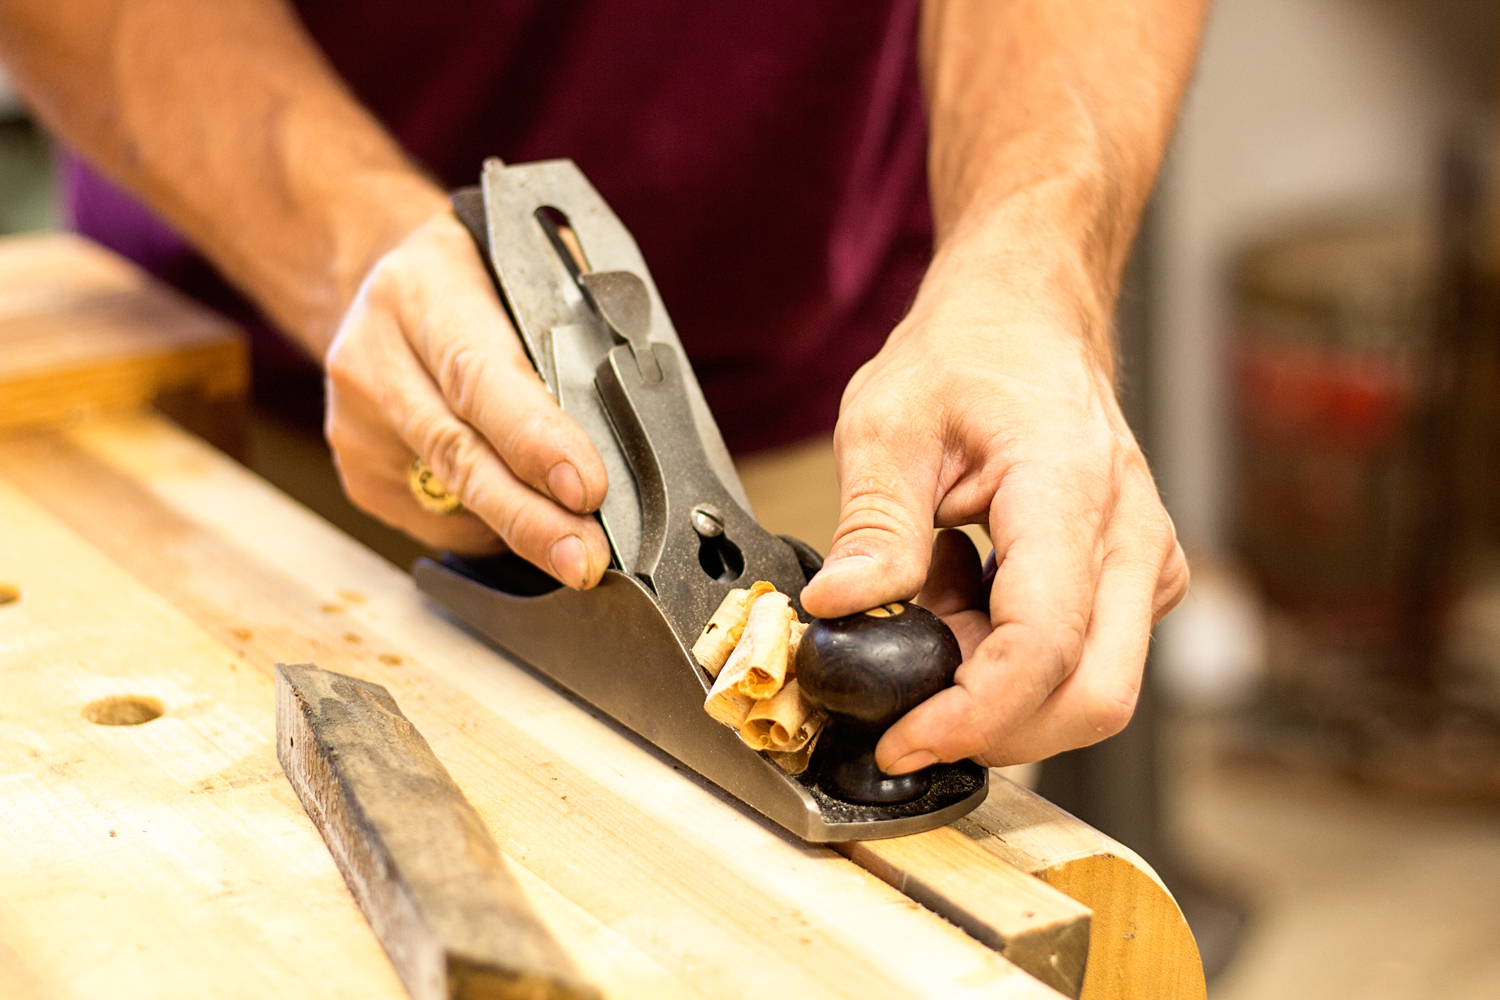 Before glueing up the pieces on the Jaguar build, I make a few passes over each surface with my Stanley No.3 smoother. It removes any old adhesive and debris while truing up each surface.